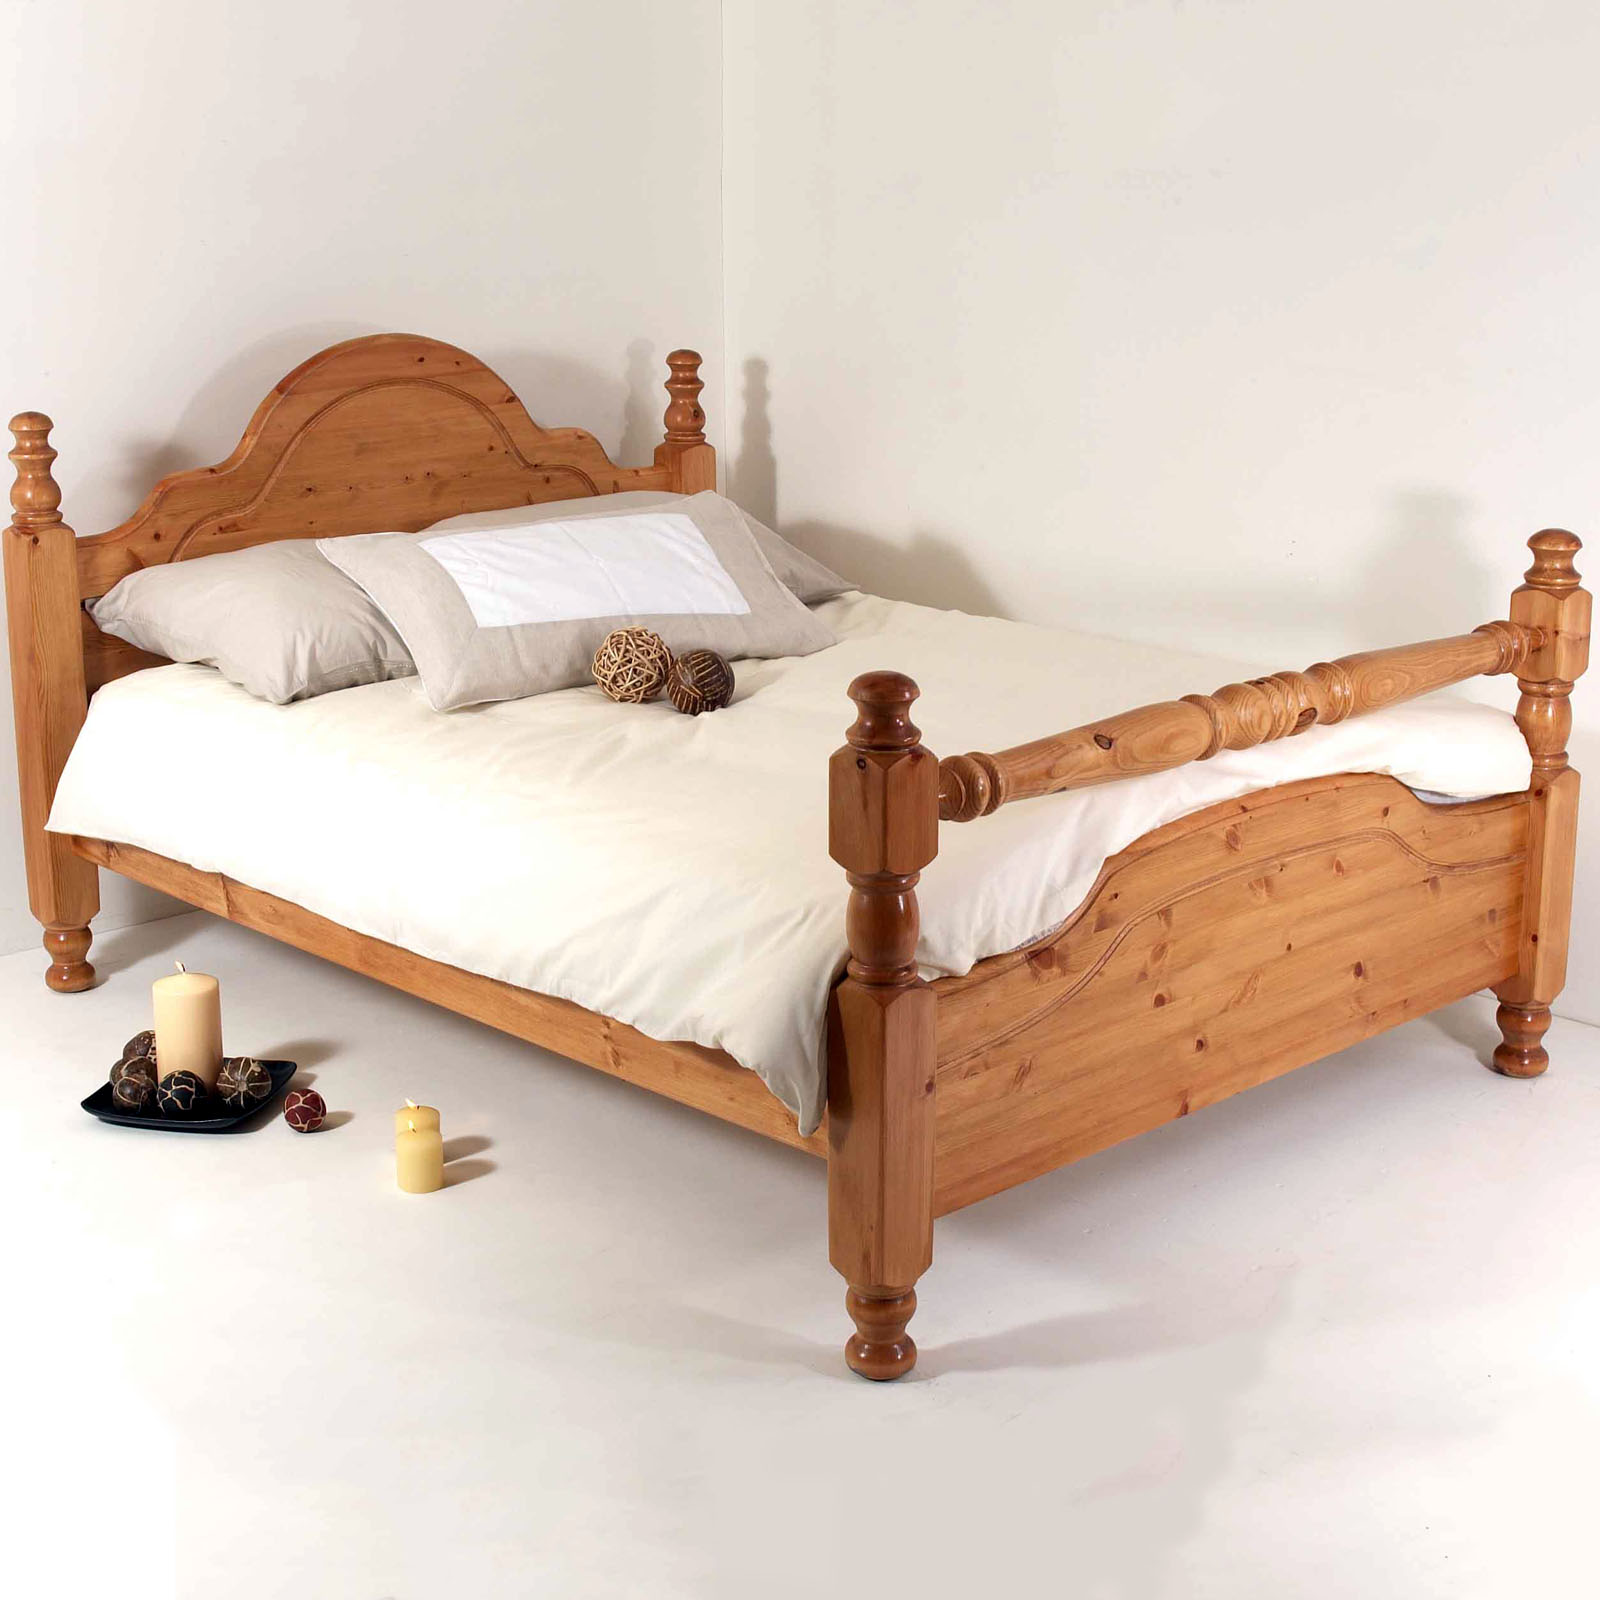 6FT Super King Size Solid Wood Bed Frame THE CLASSIC With ...